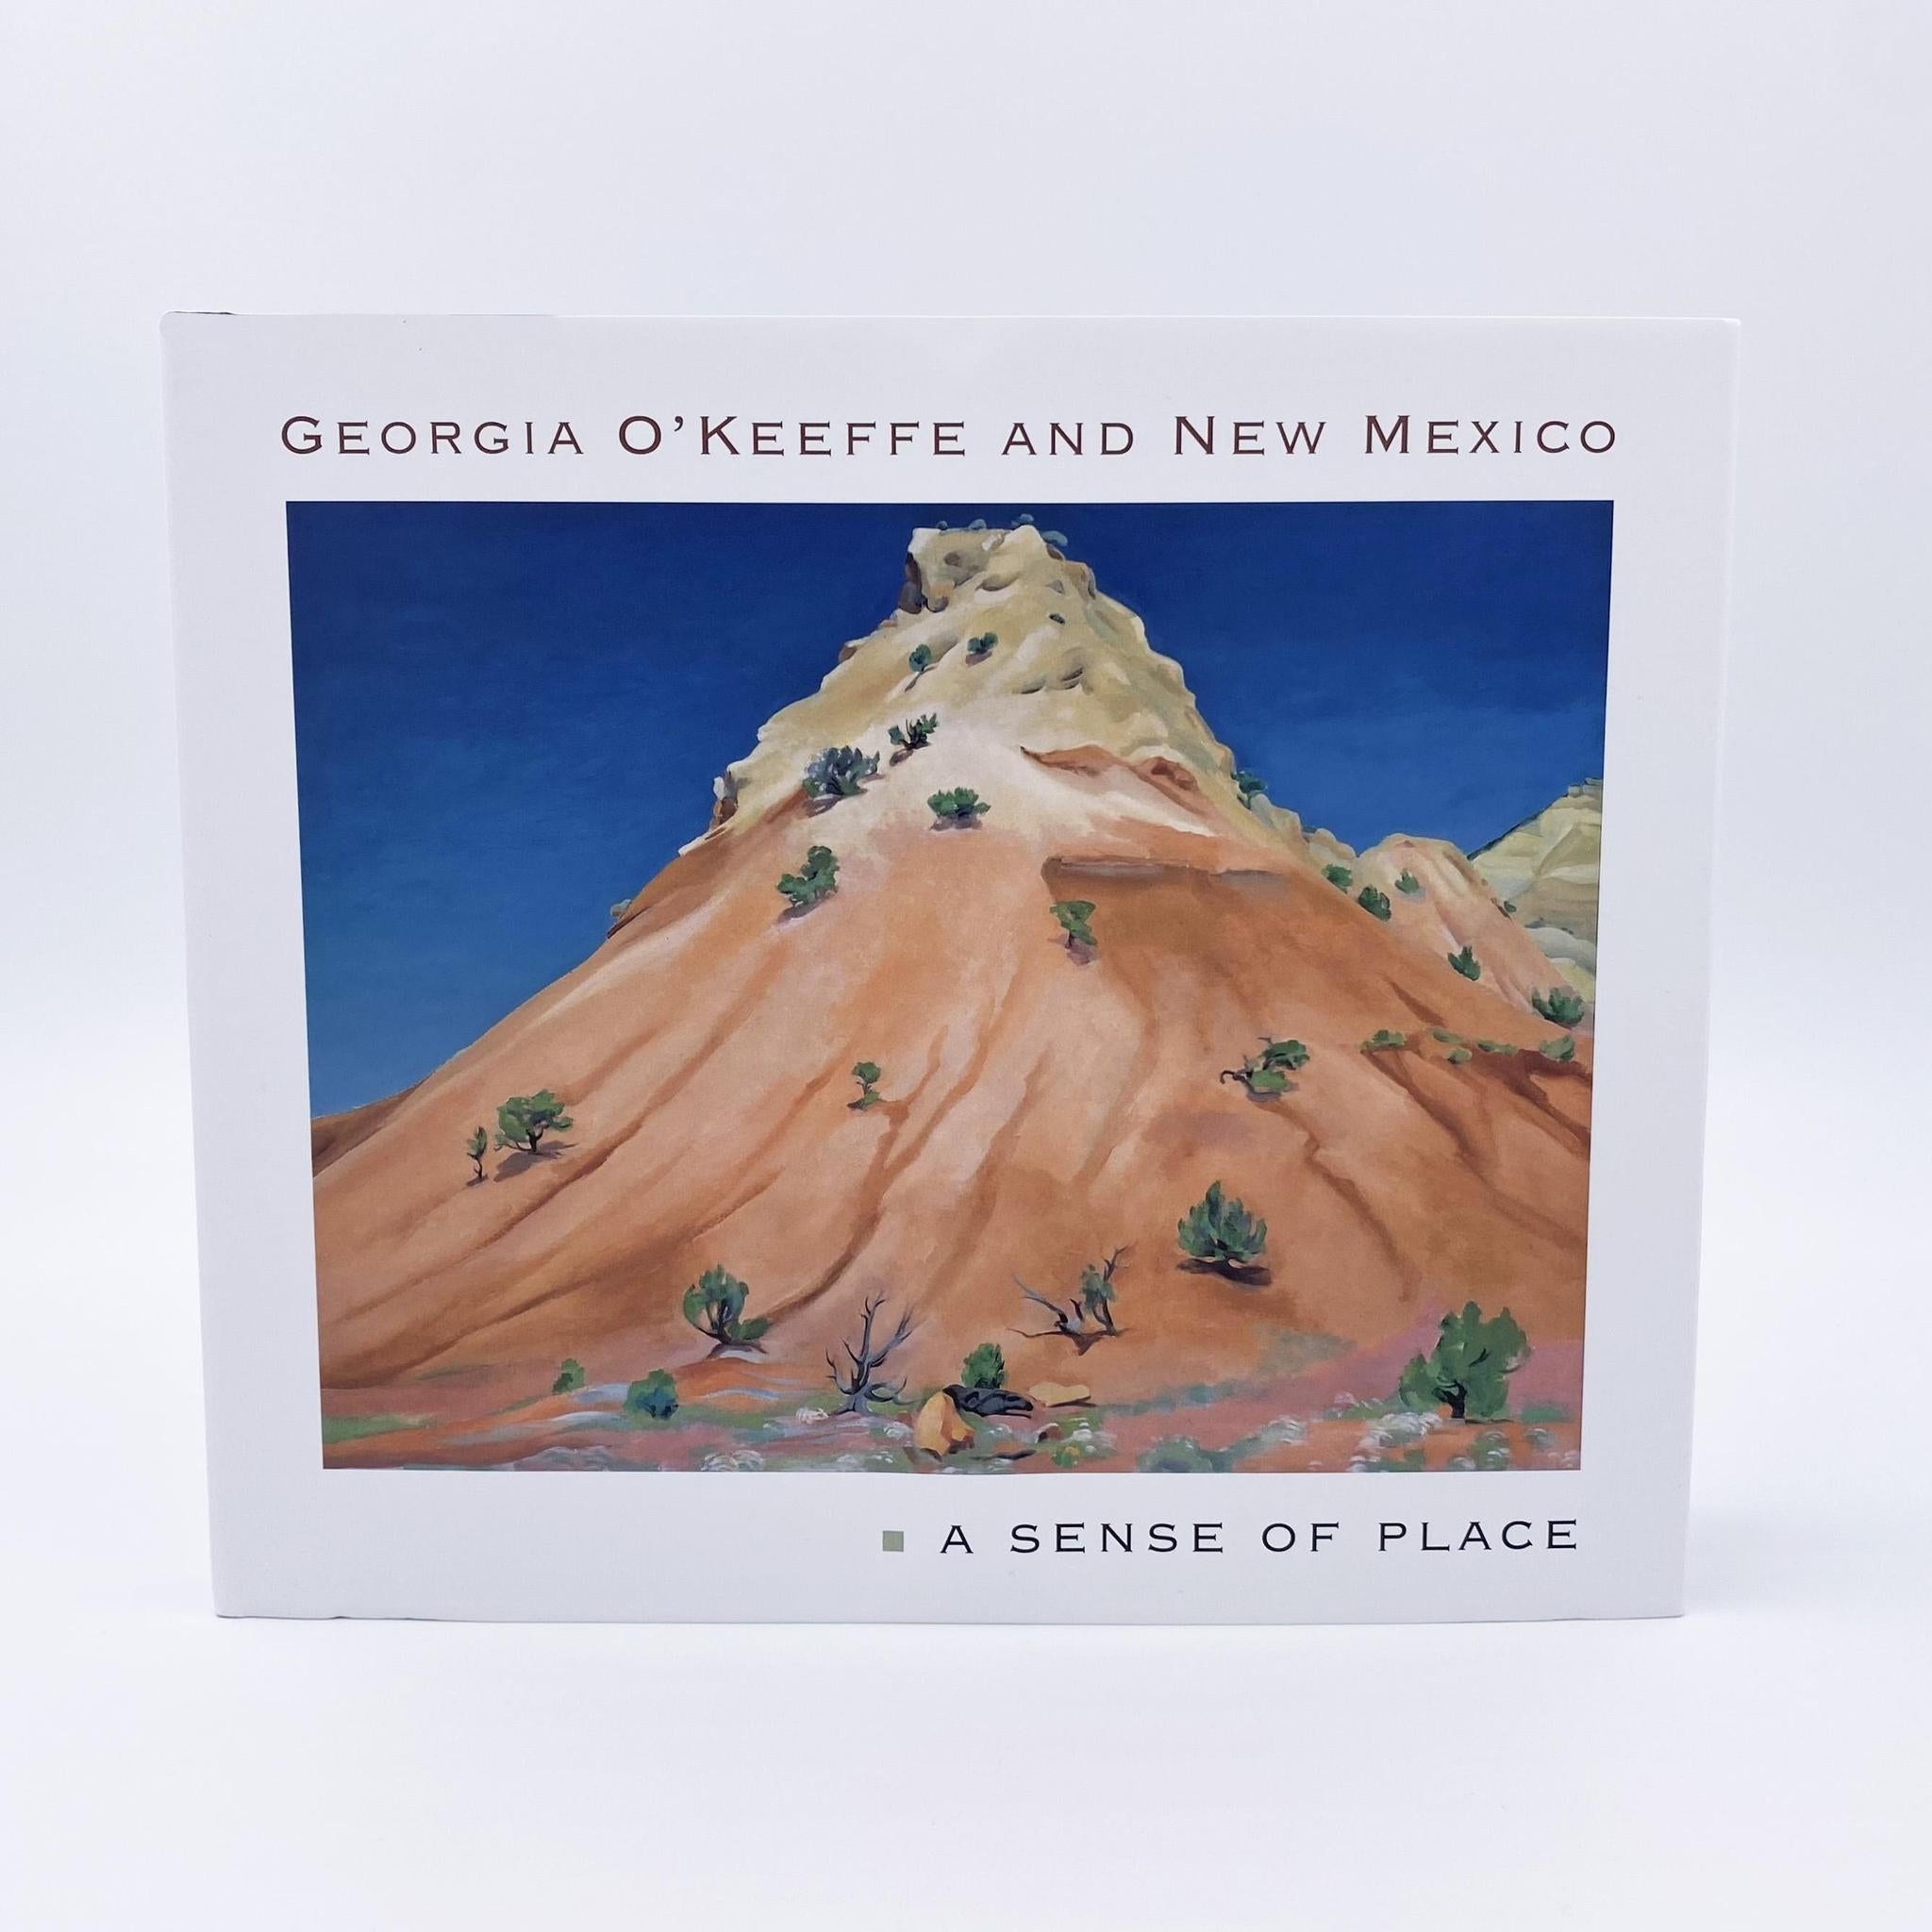 Georgia O'Keeffe and New Mexico